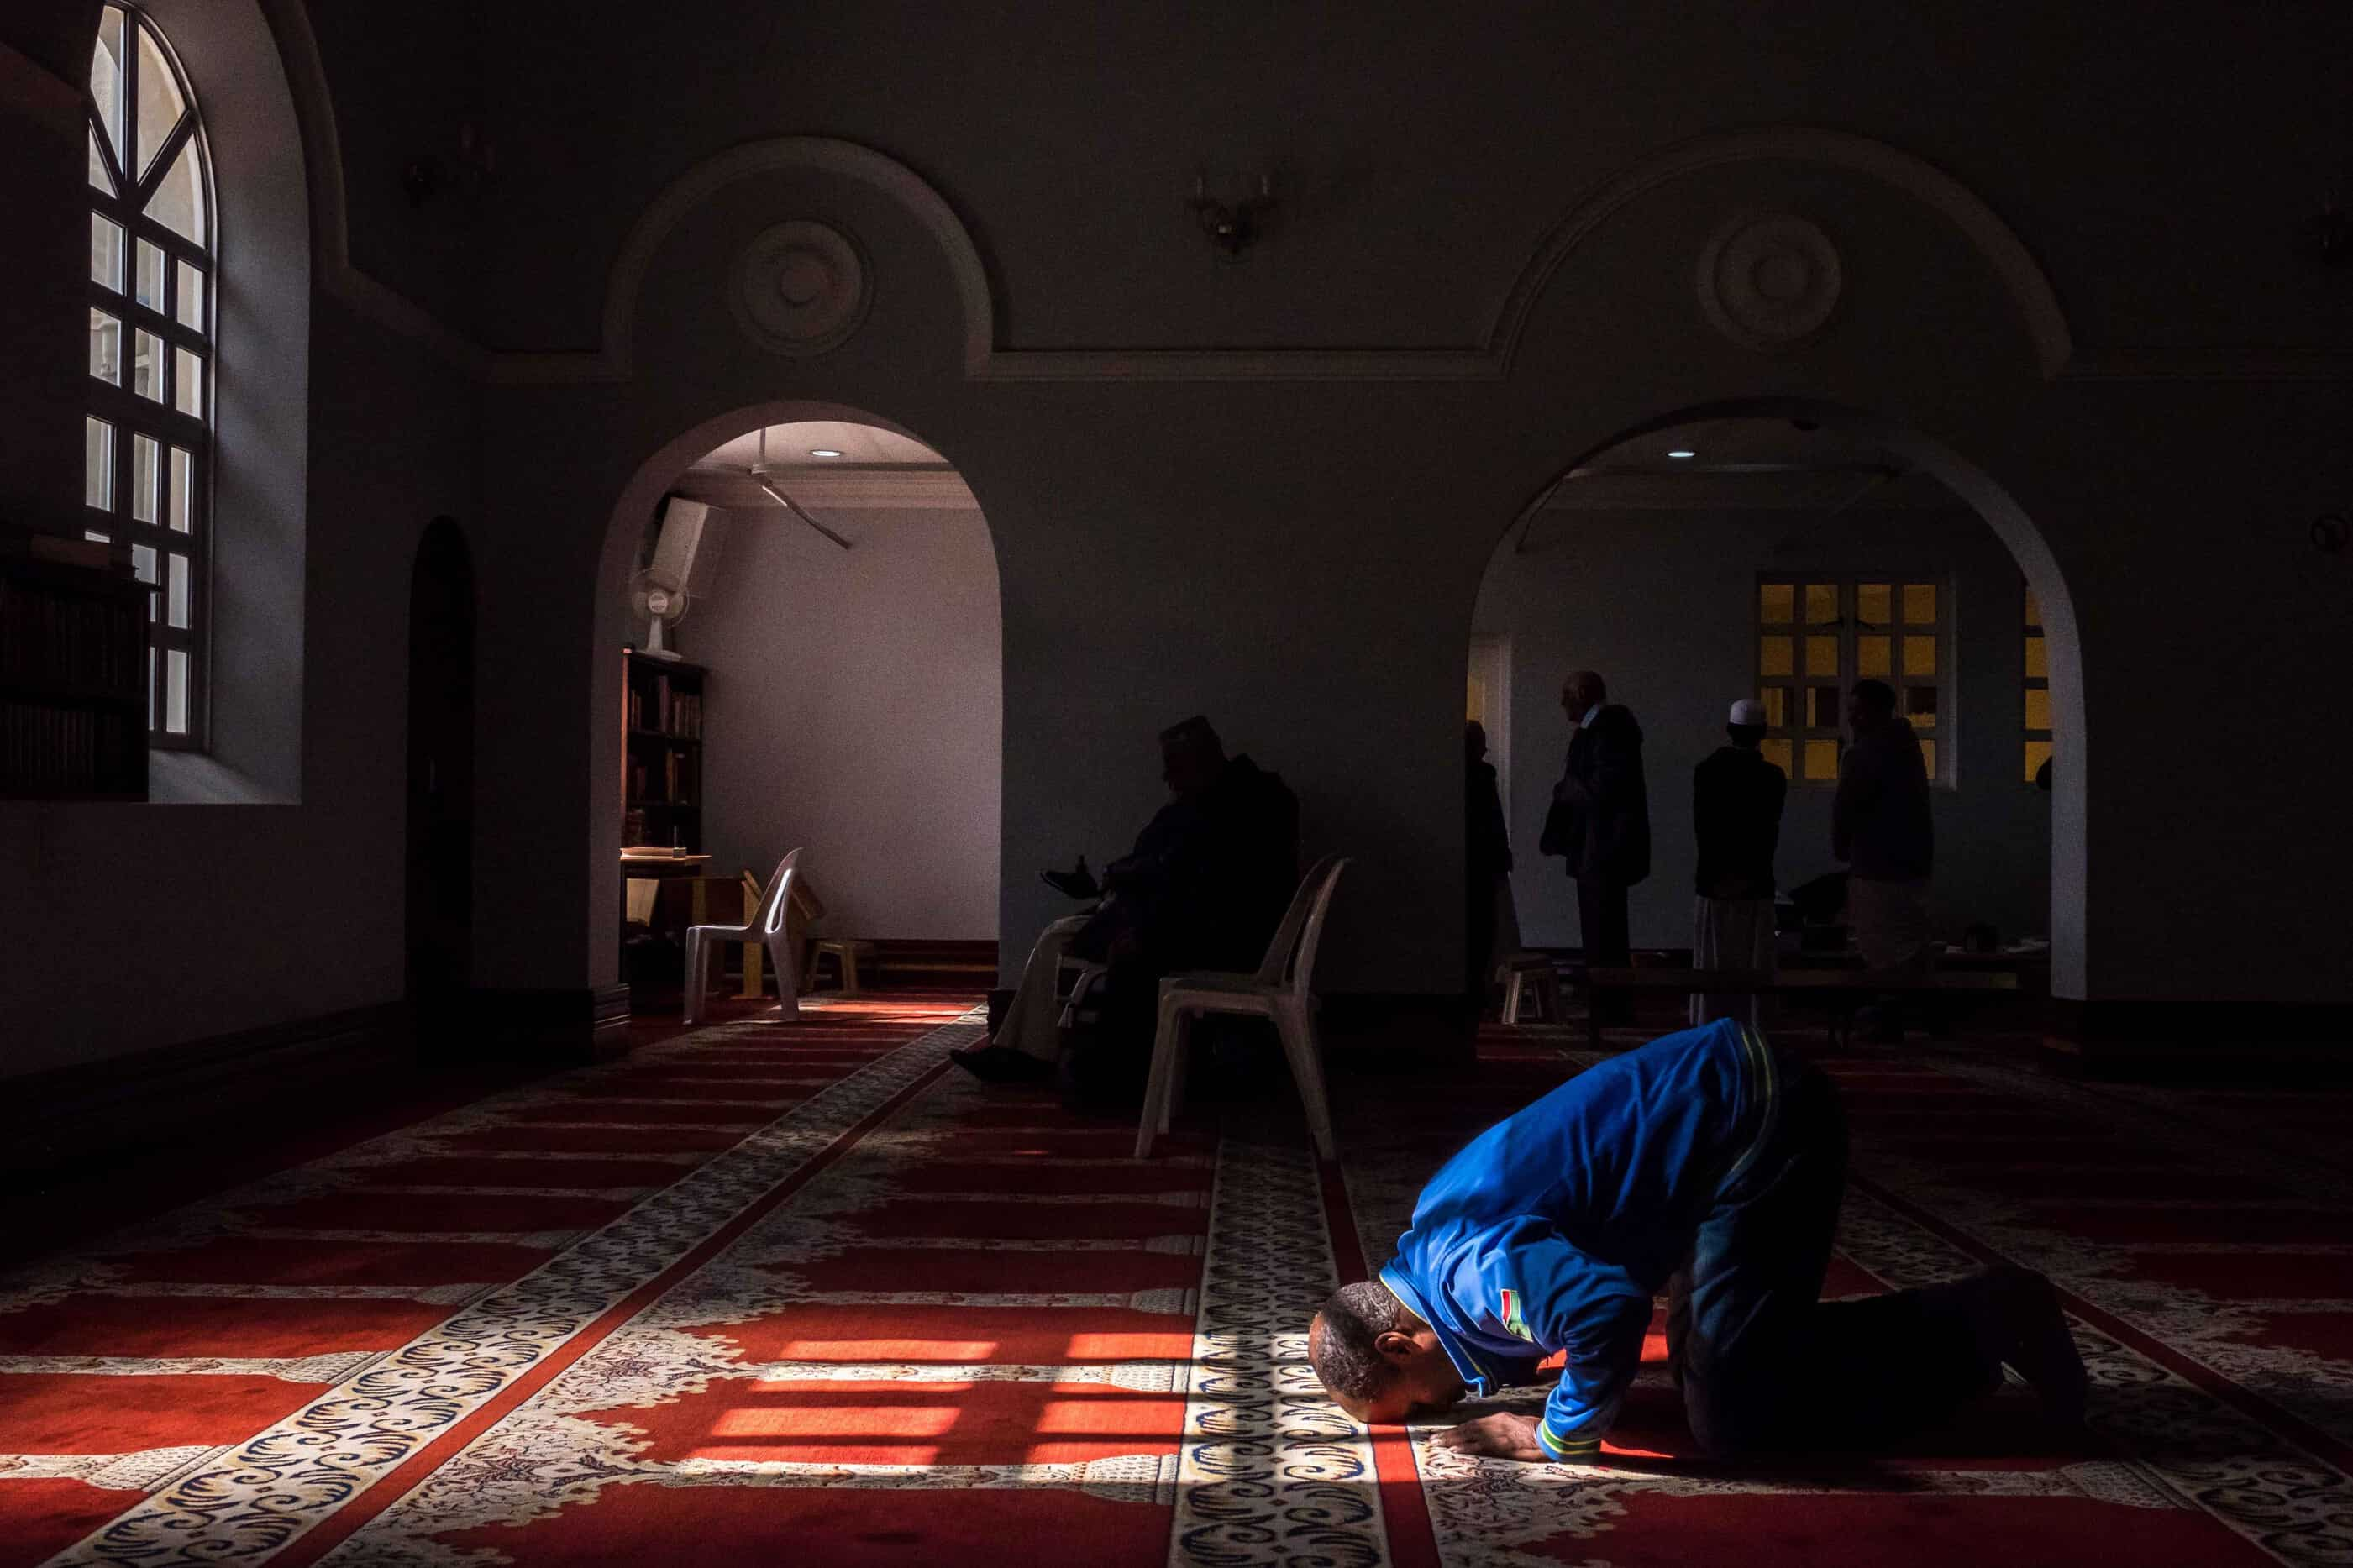 20 May 2019: A man praying at the Muir Street mosque in Cape Town's inner city.